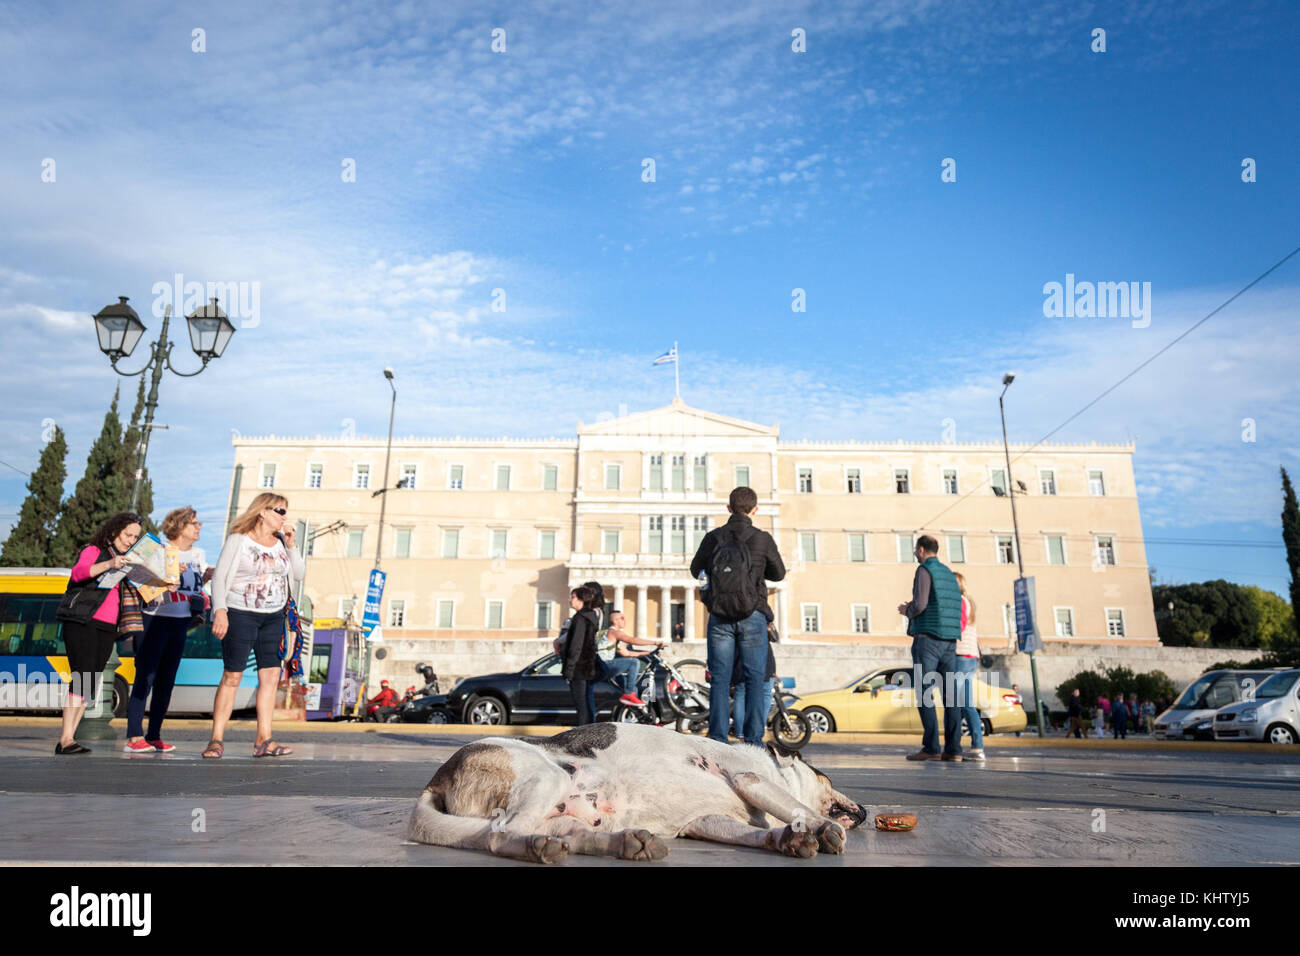 ATHENS, GREECE - NOVEMBER 3, 2017: Dog sleeping on Syntagma square, in front of the Parliament. This square is one - Stock Image